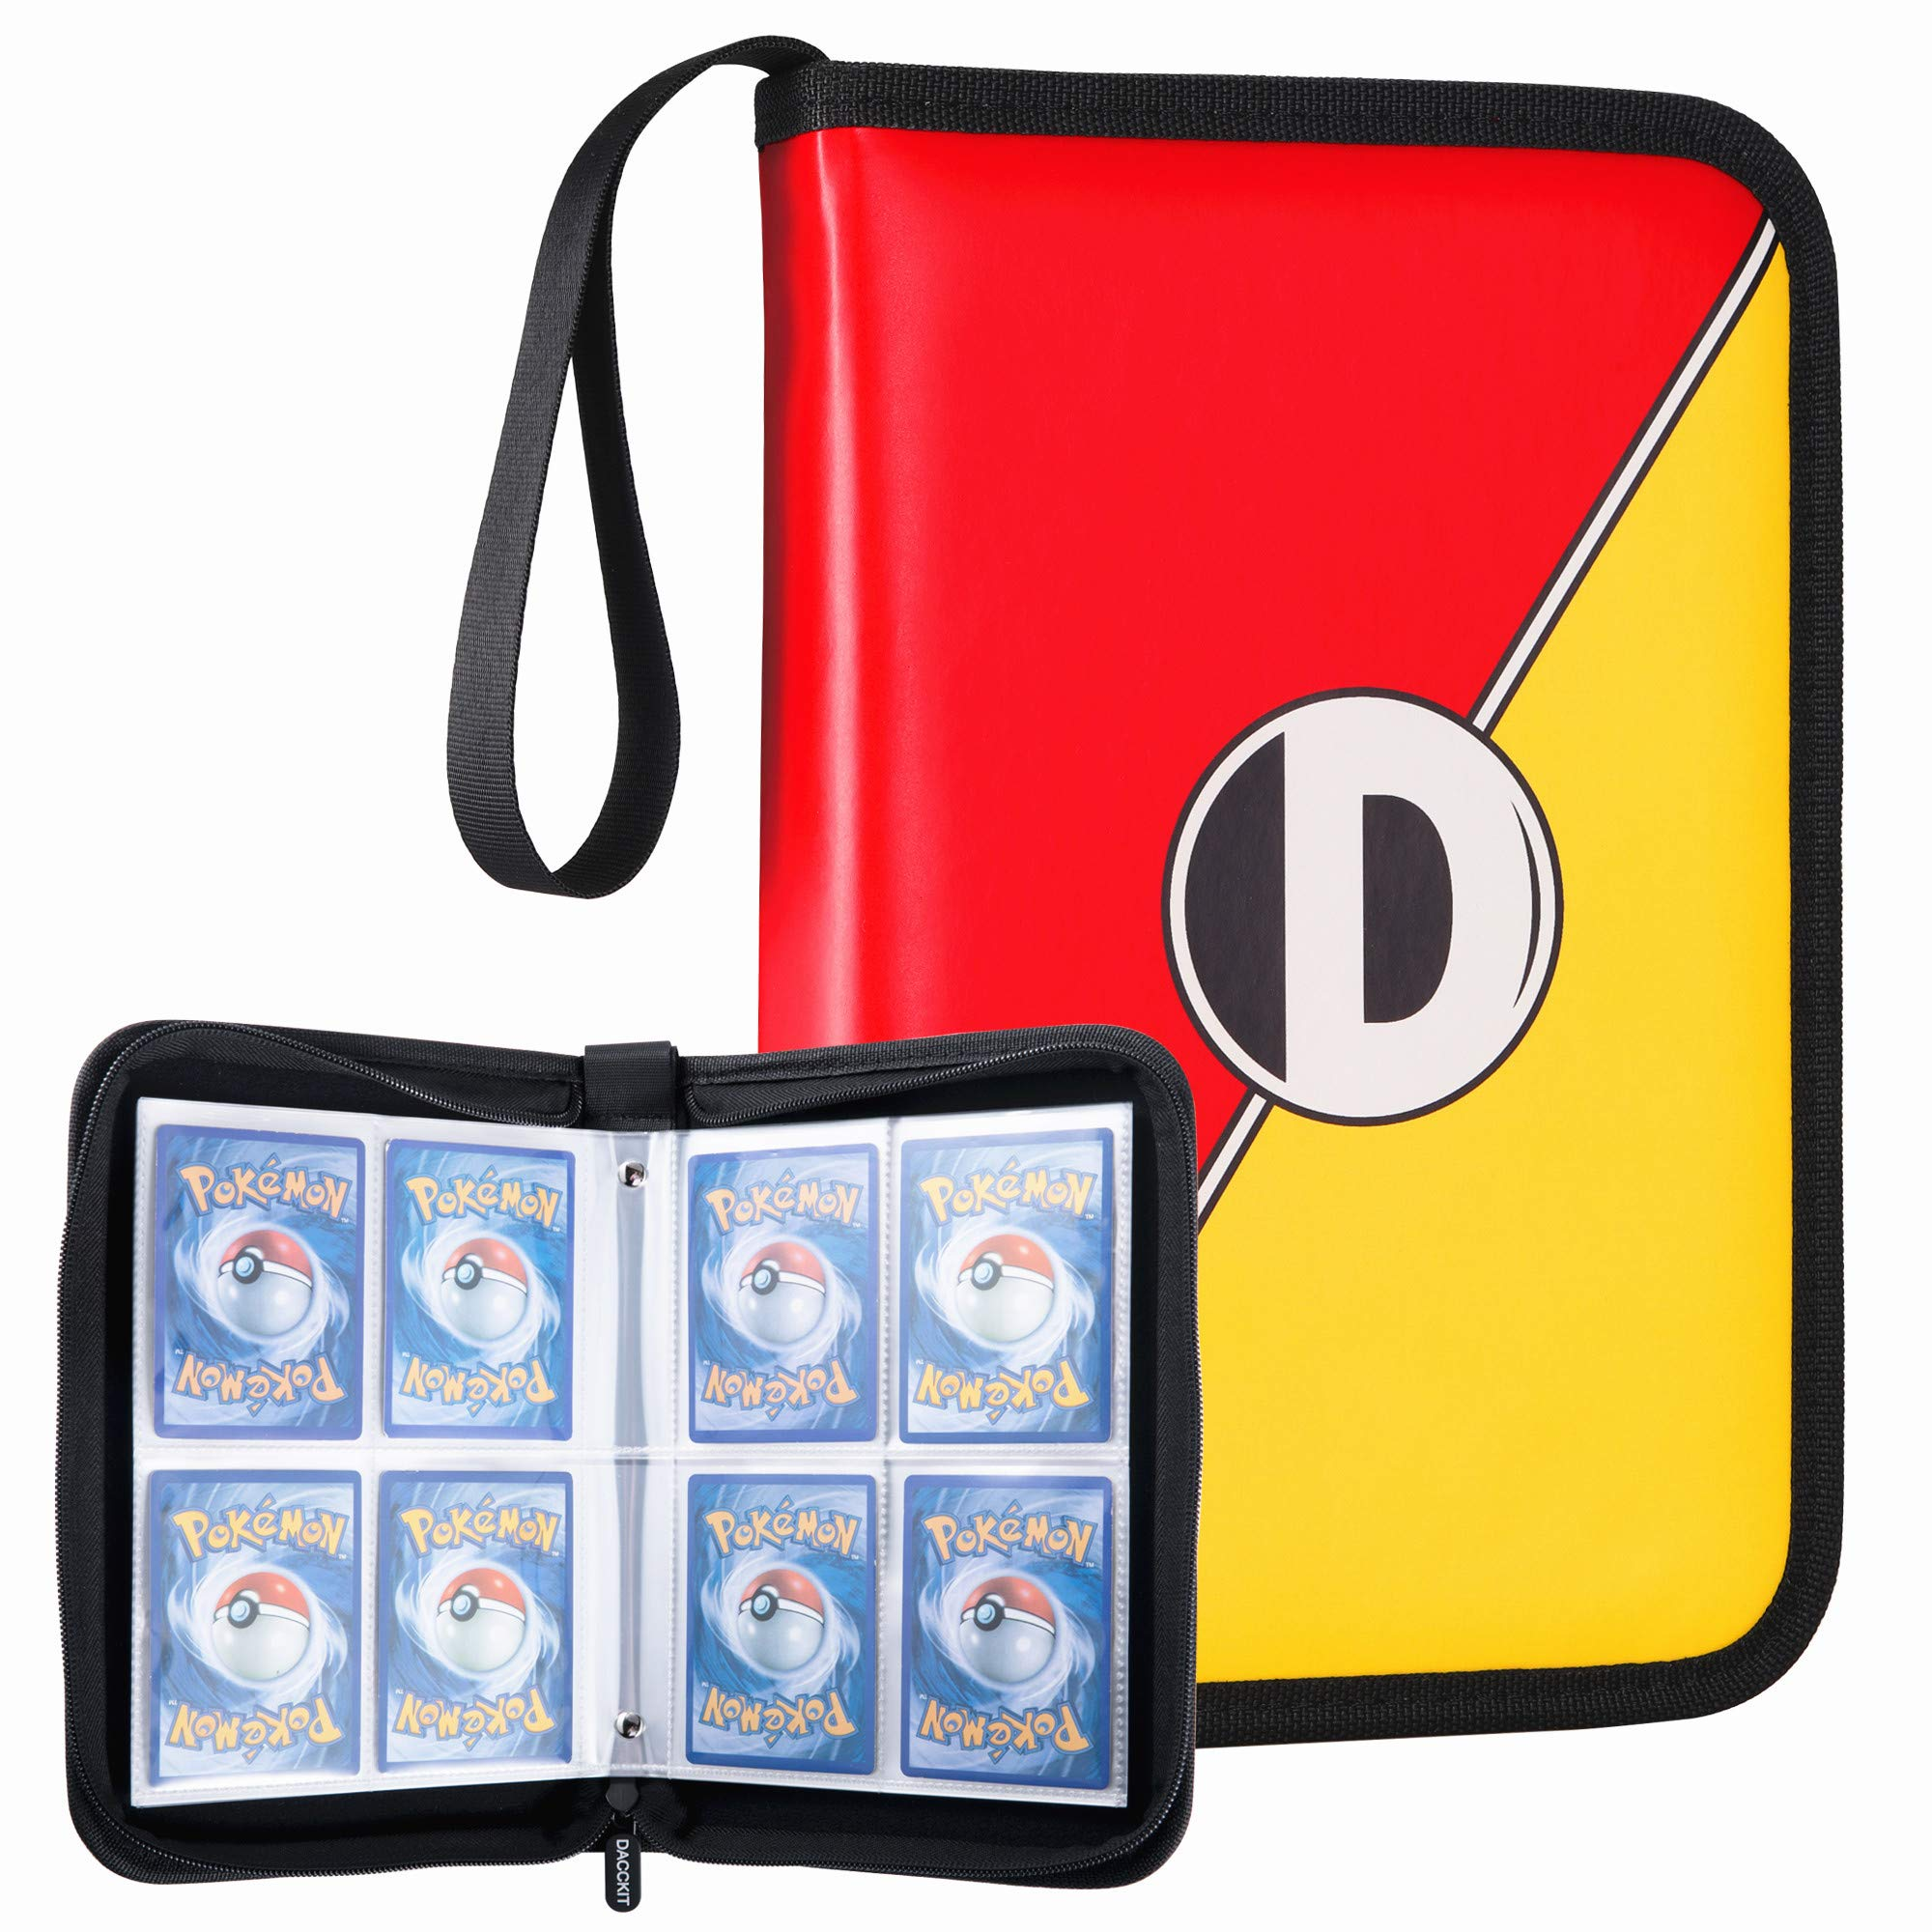 D DACCKIT Carrying Case Compatible with Pokemon Trading Cards, Cards Collectors Album with 20 Premium 4-Pocket Pages, Holds Up to 320 Cards by D DACCKIT